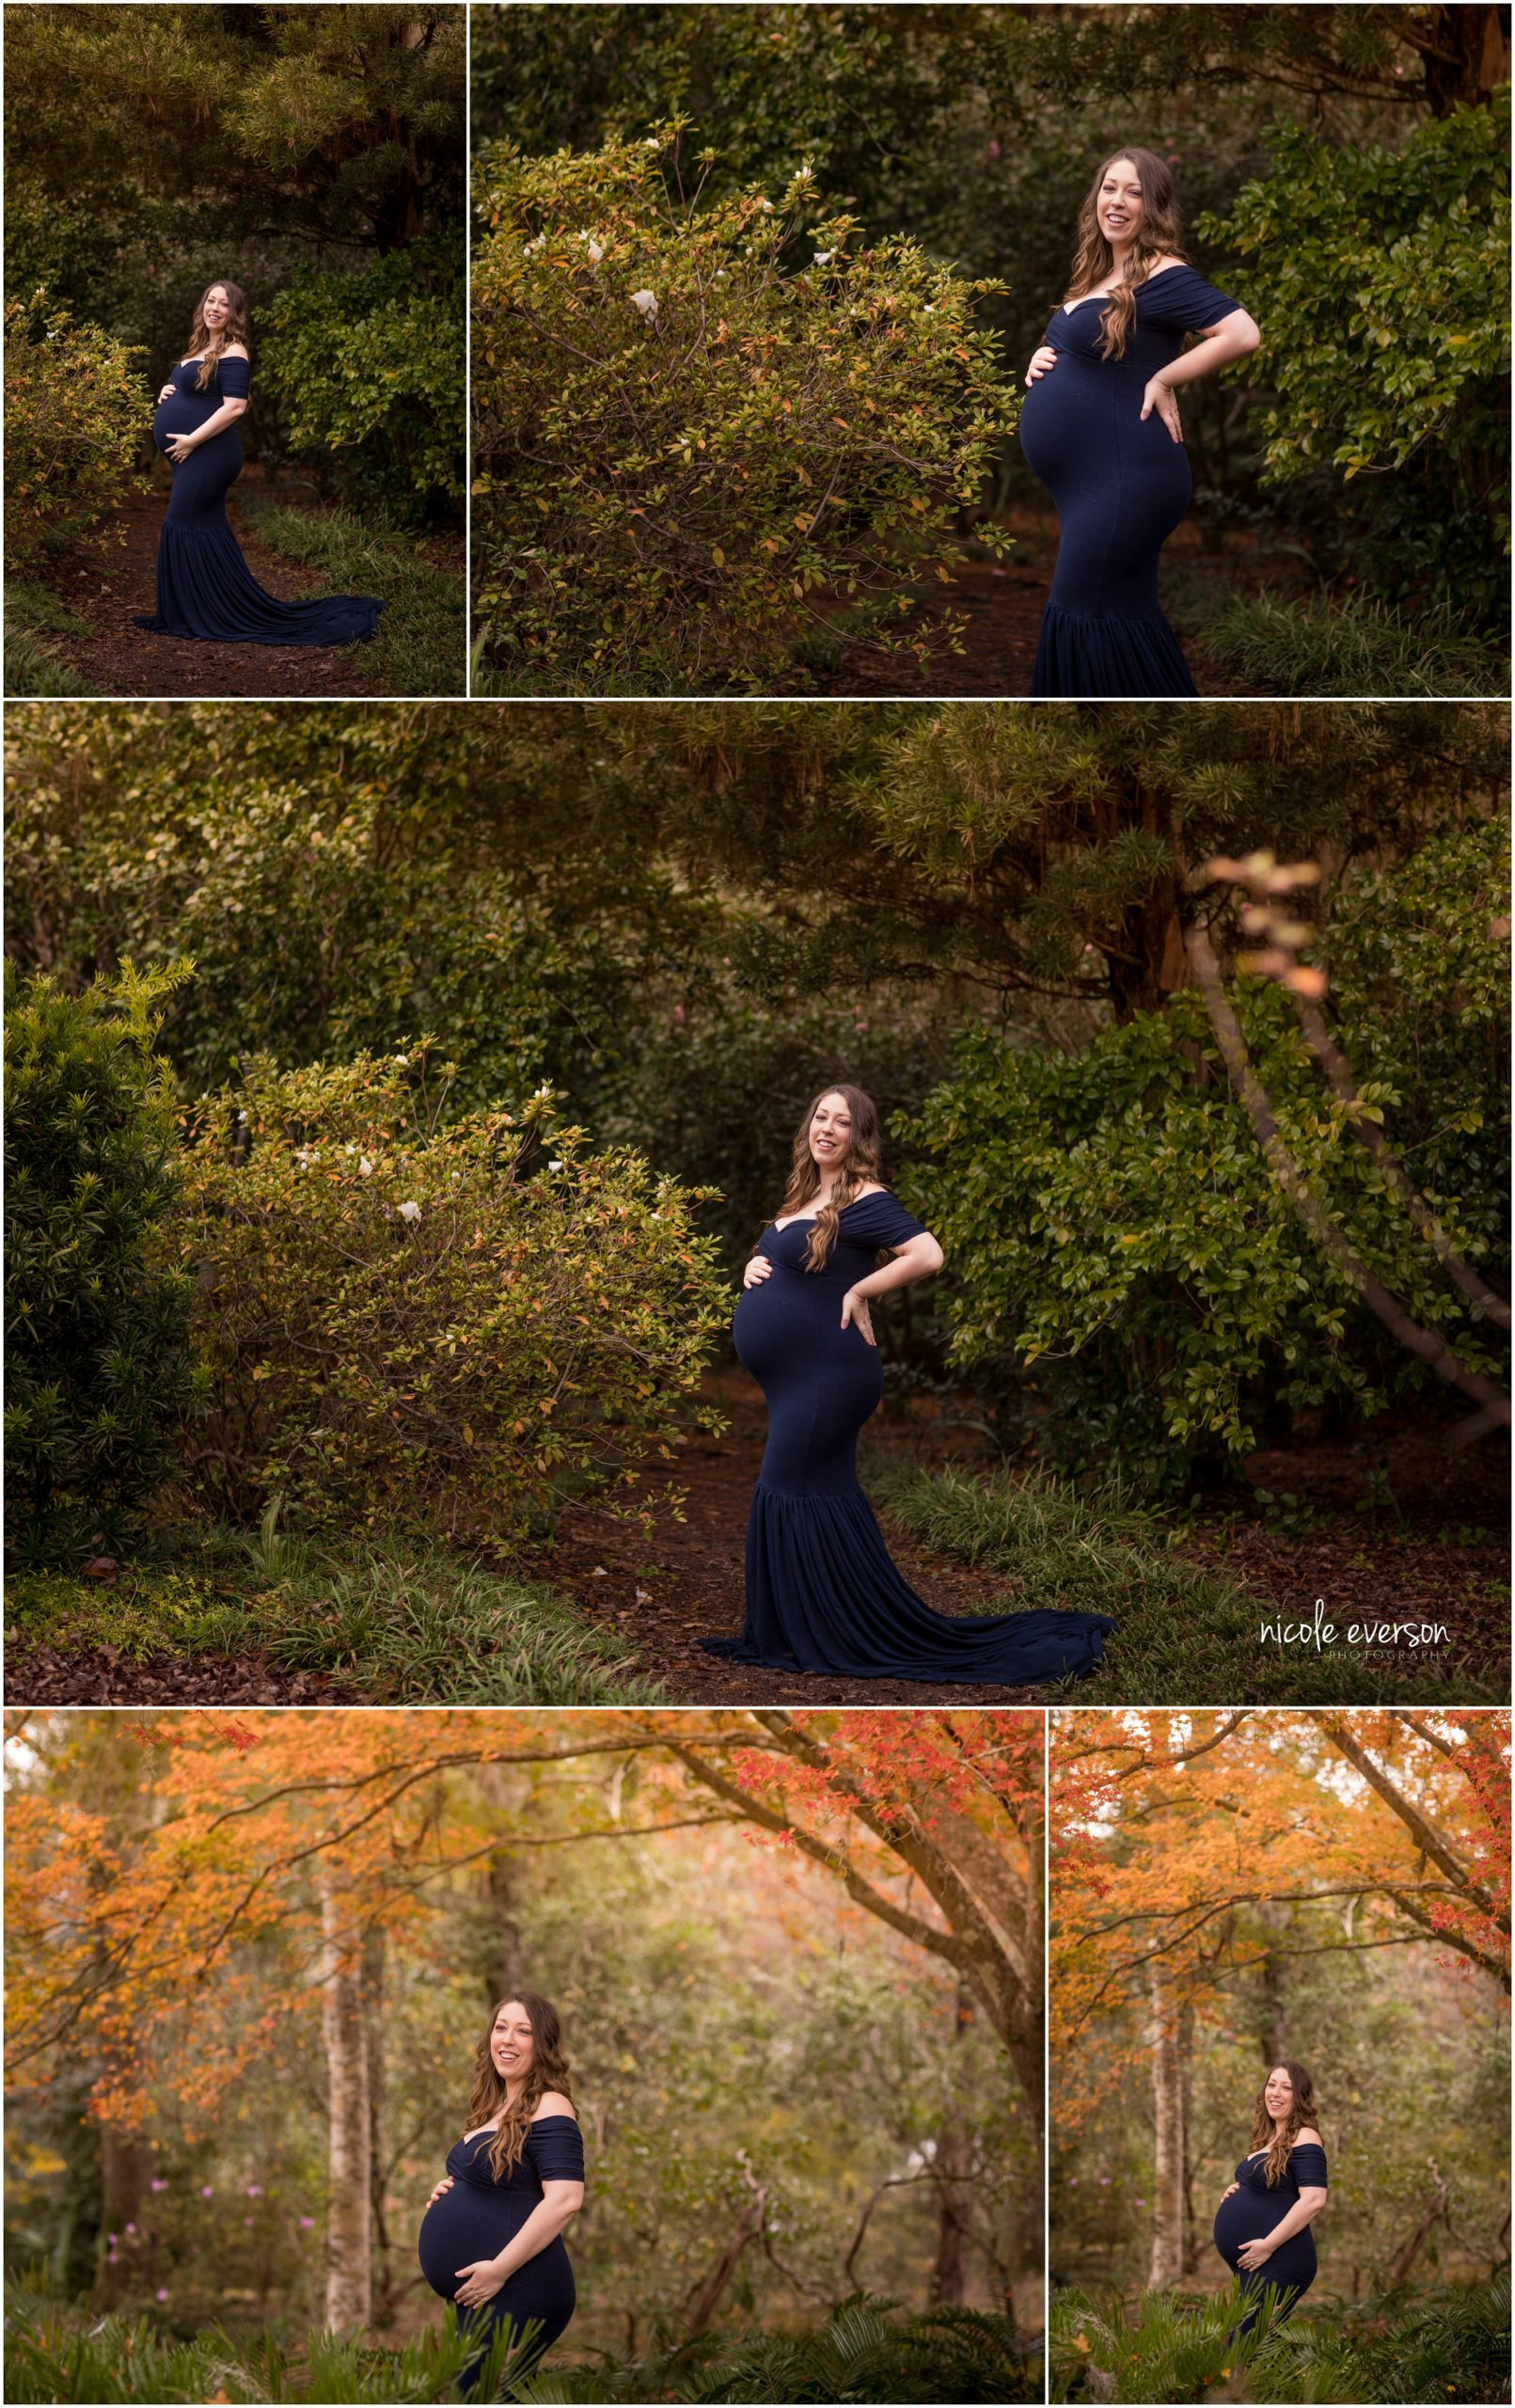 maternity photographer near me Nicole Everson Photography